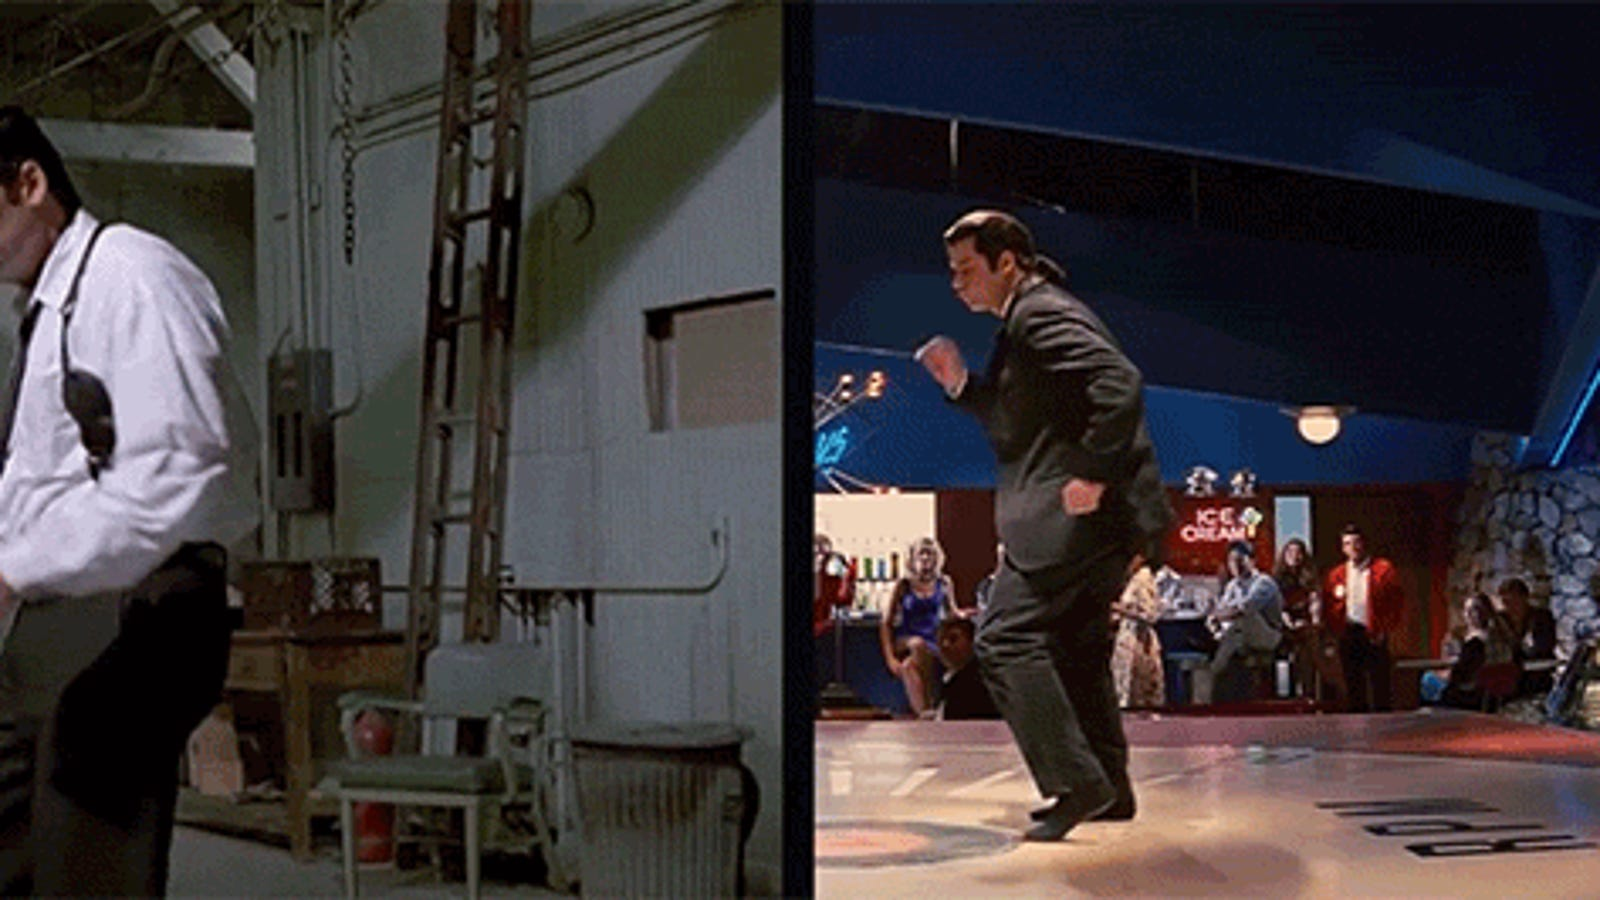 Awesome Video Links Together Quentin Tarantino's Cinematic Universe